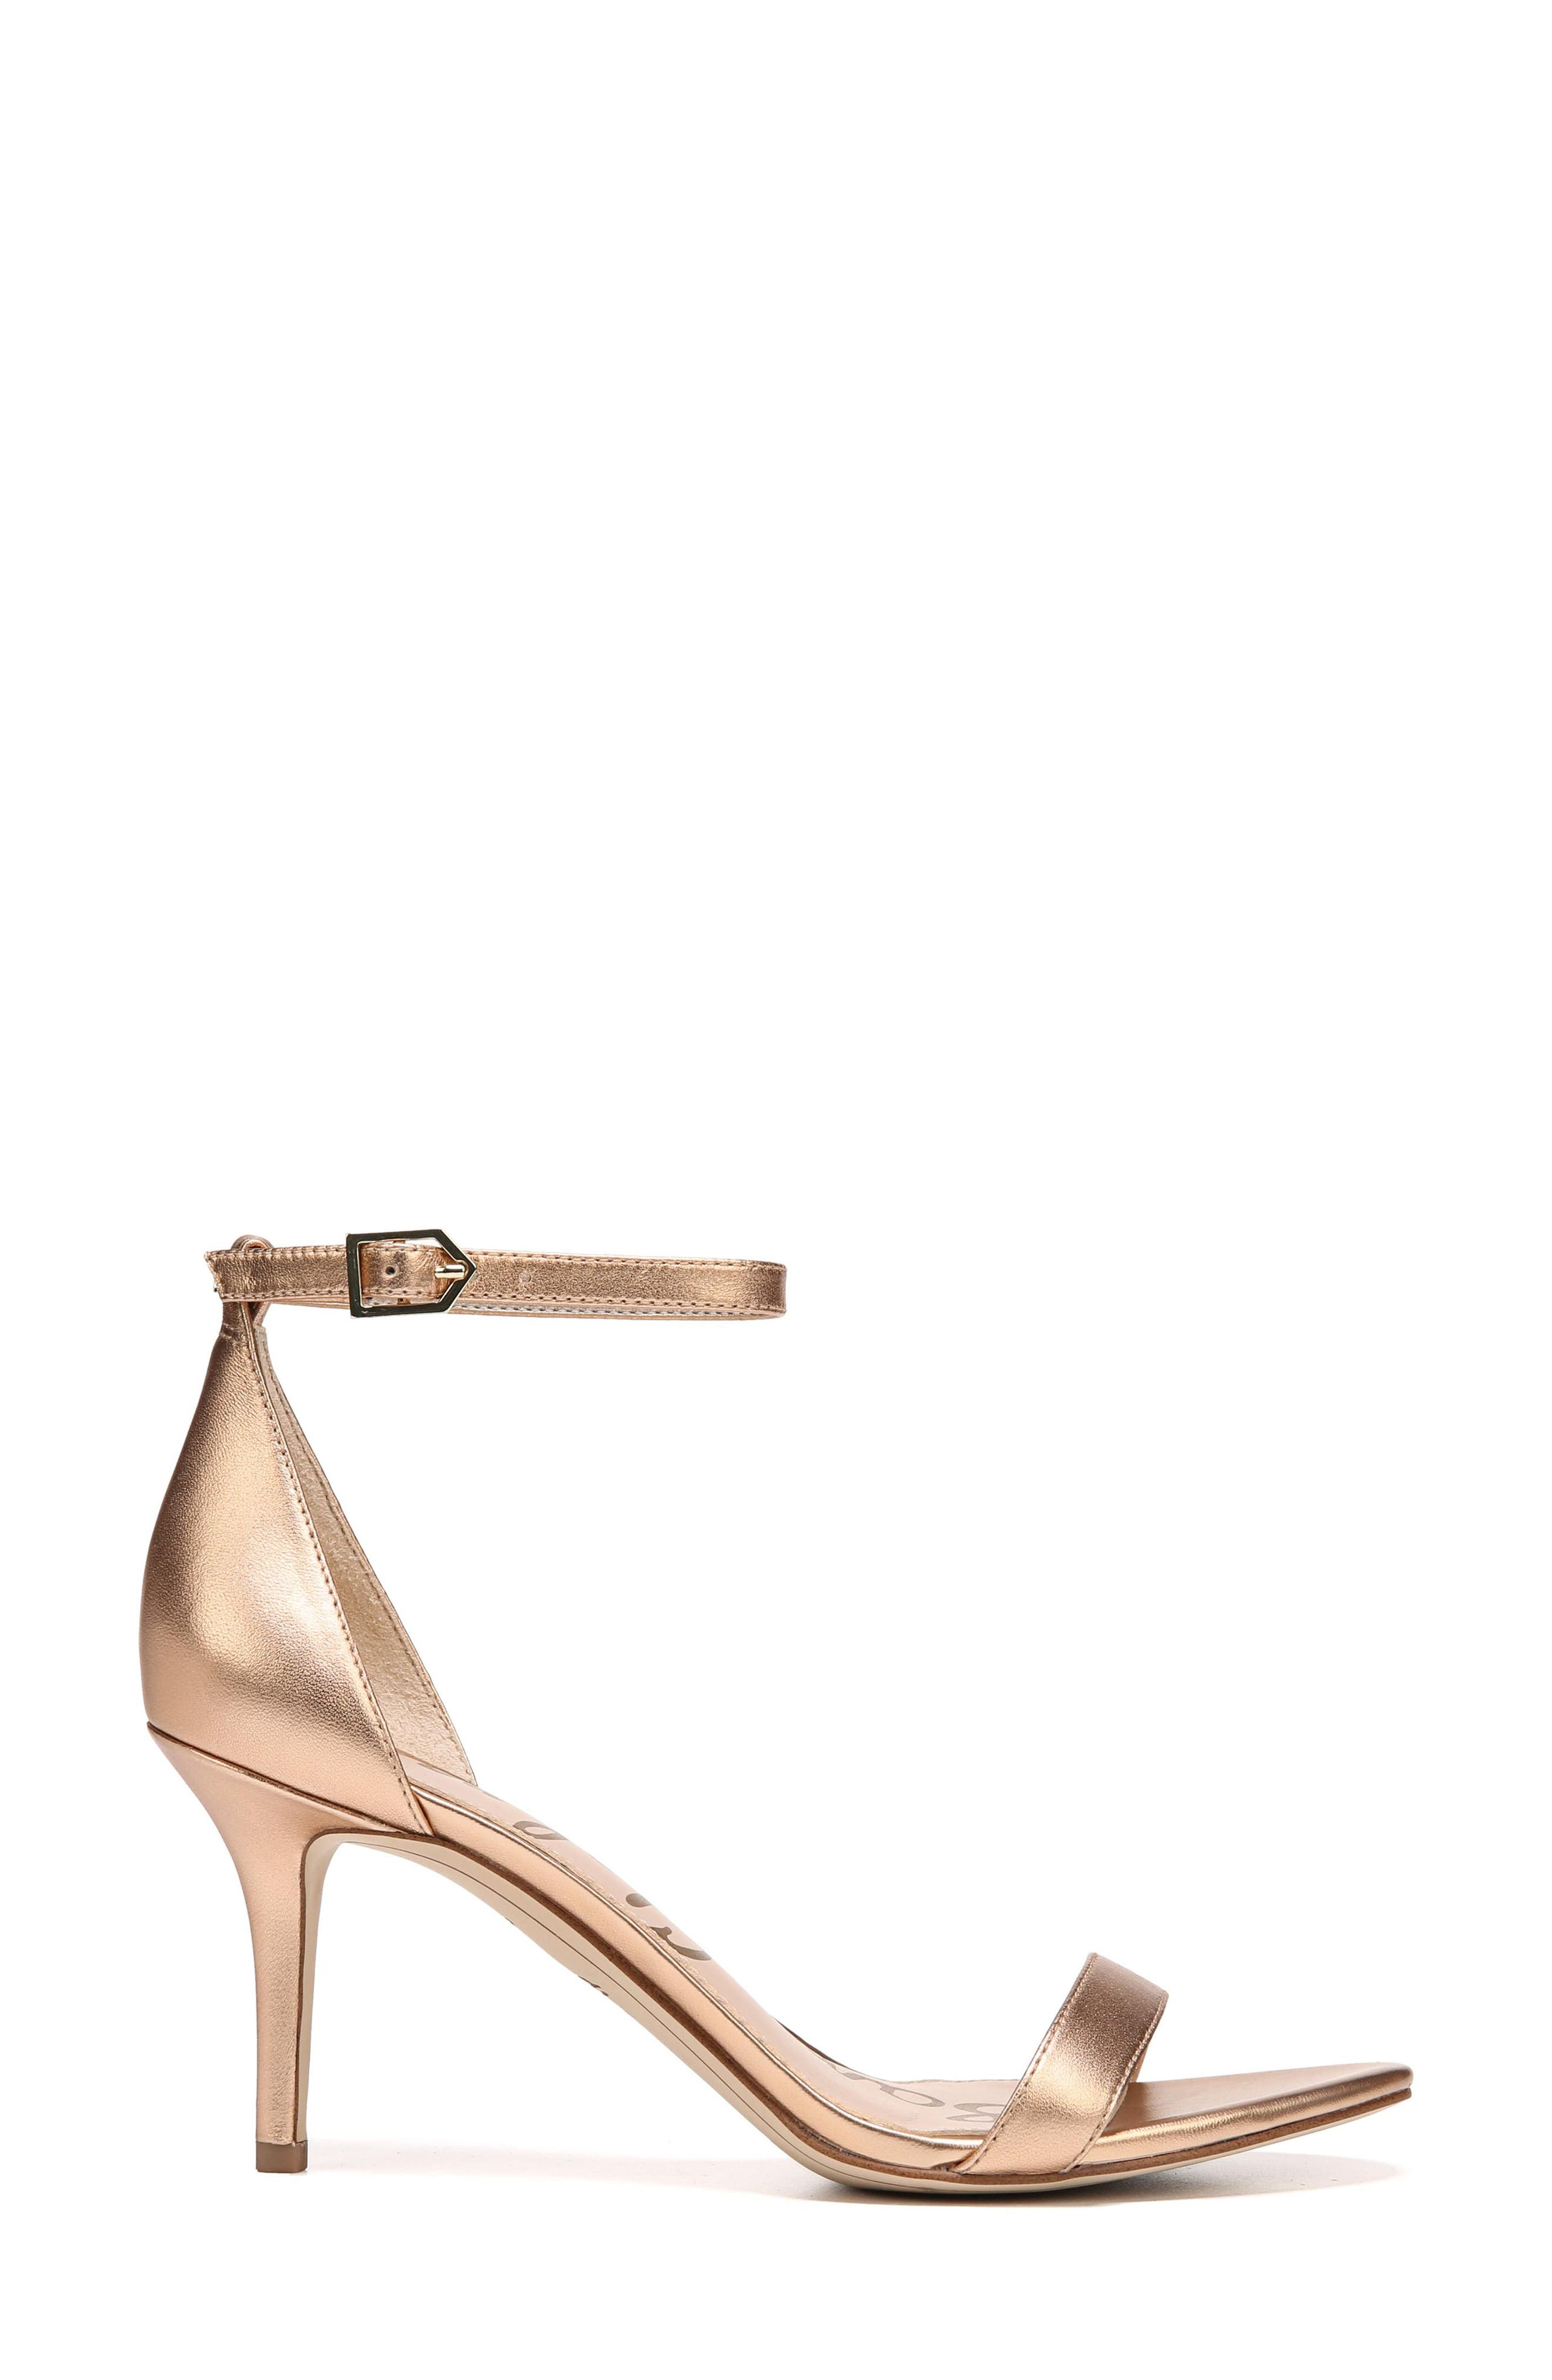 Alternate Image 3  - Sam Edelman 'Patti' Ankle Strap Sandal (Women)